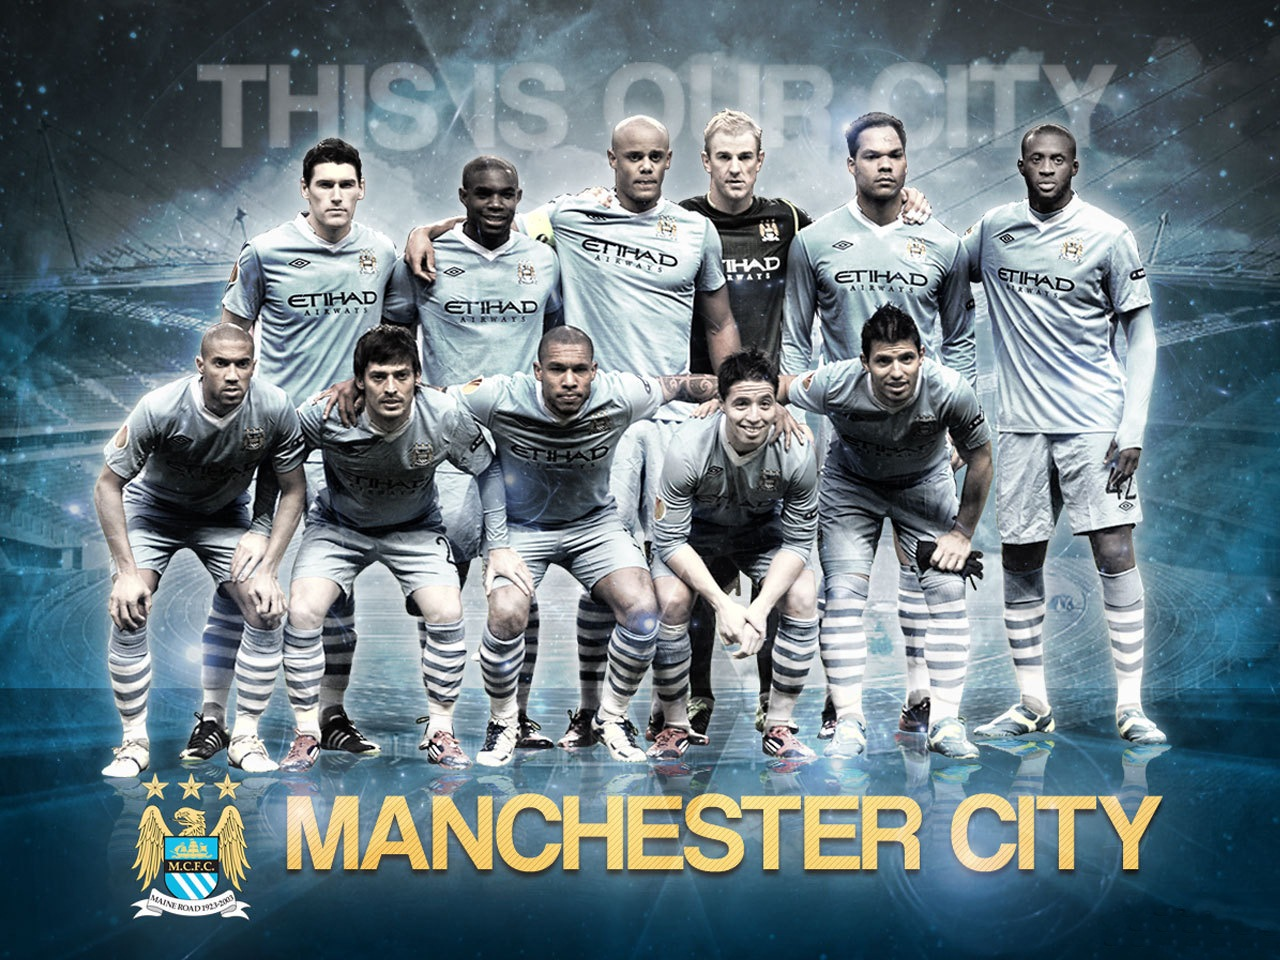 All Wallpapers Manchester City Football Club Wallpapers 1280x960